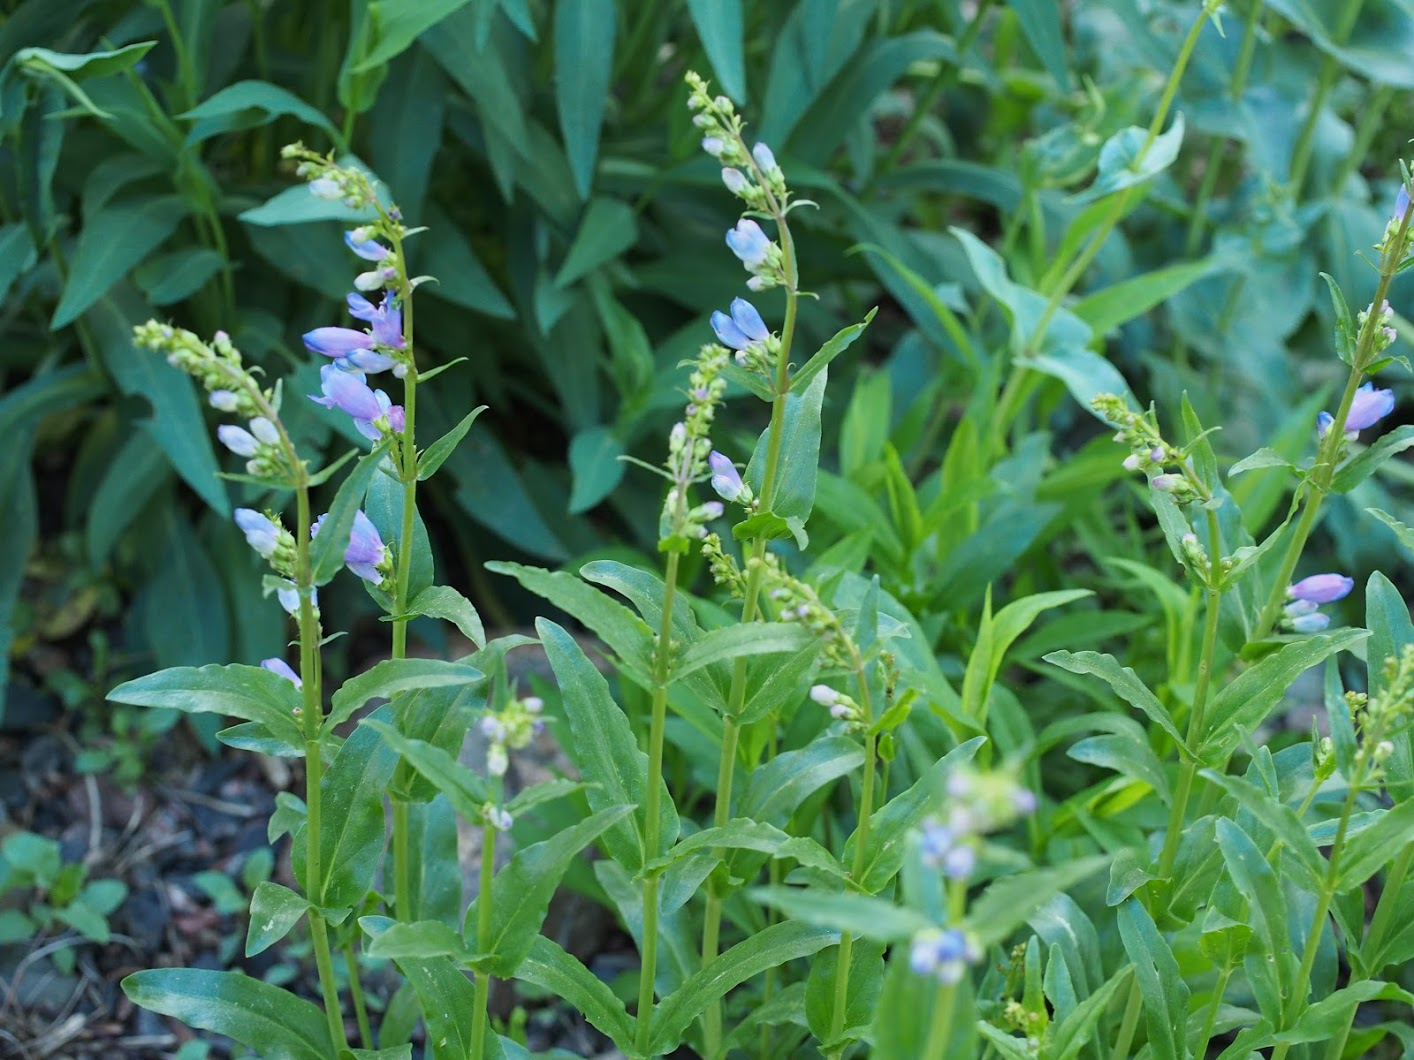 Penstemon strictus